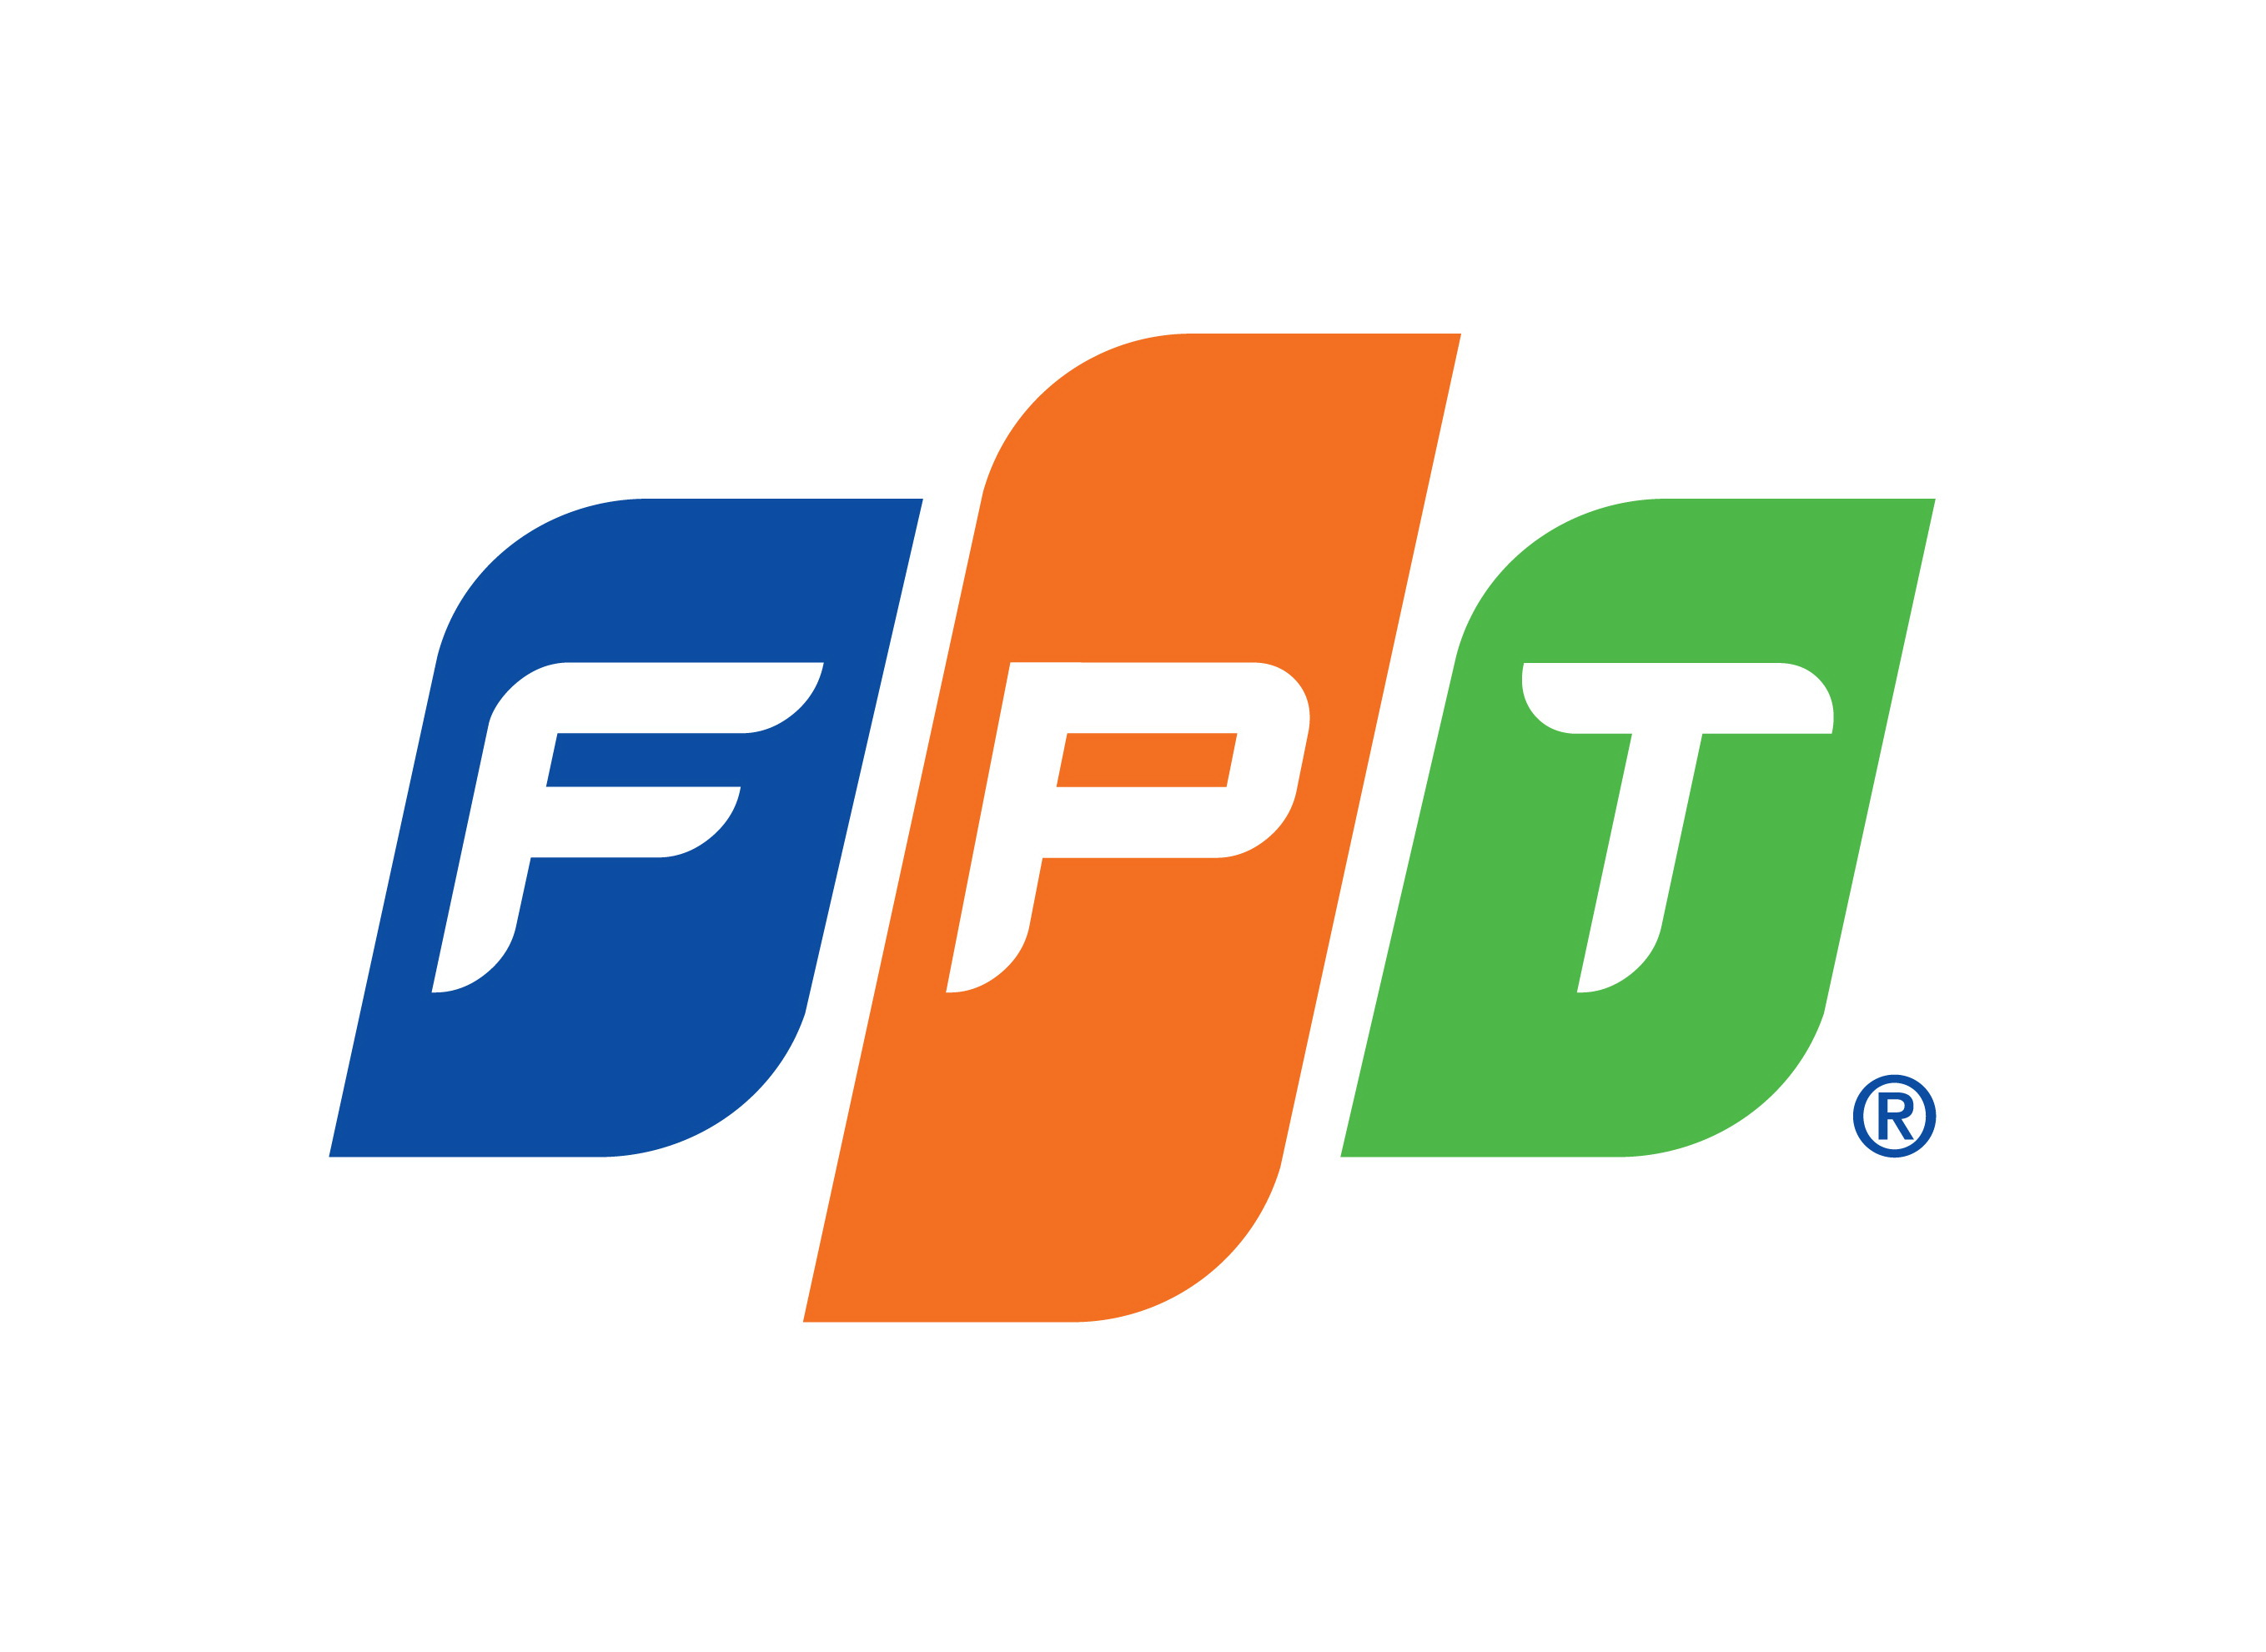 fpt- thanh lap cong ty